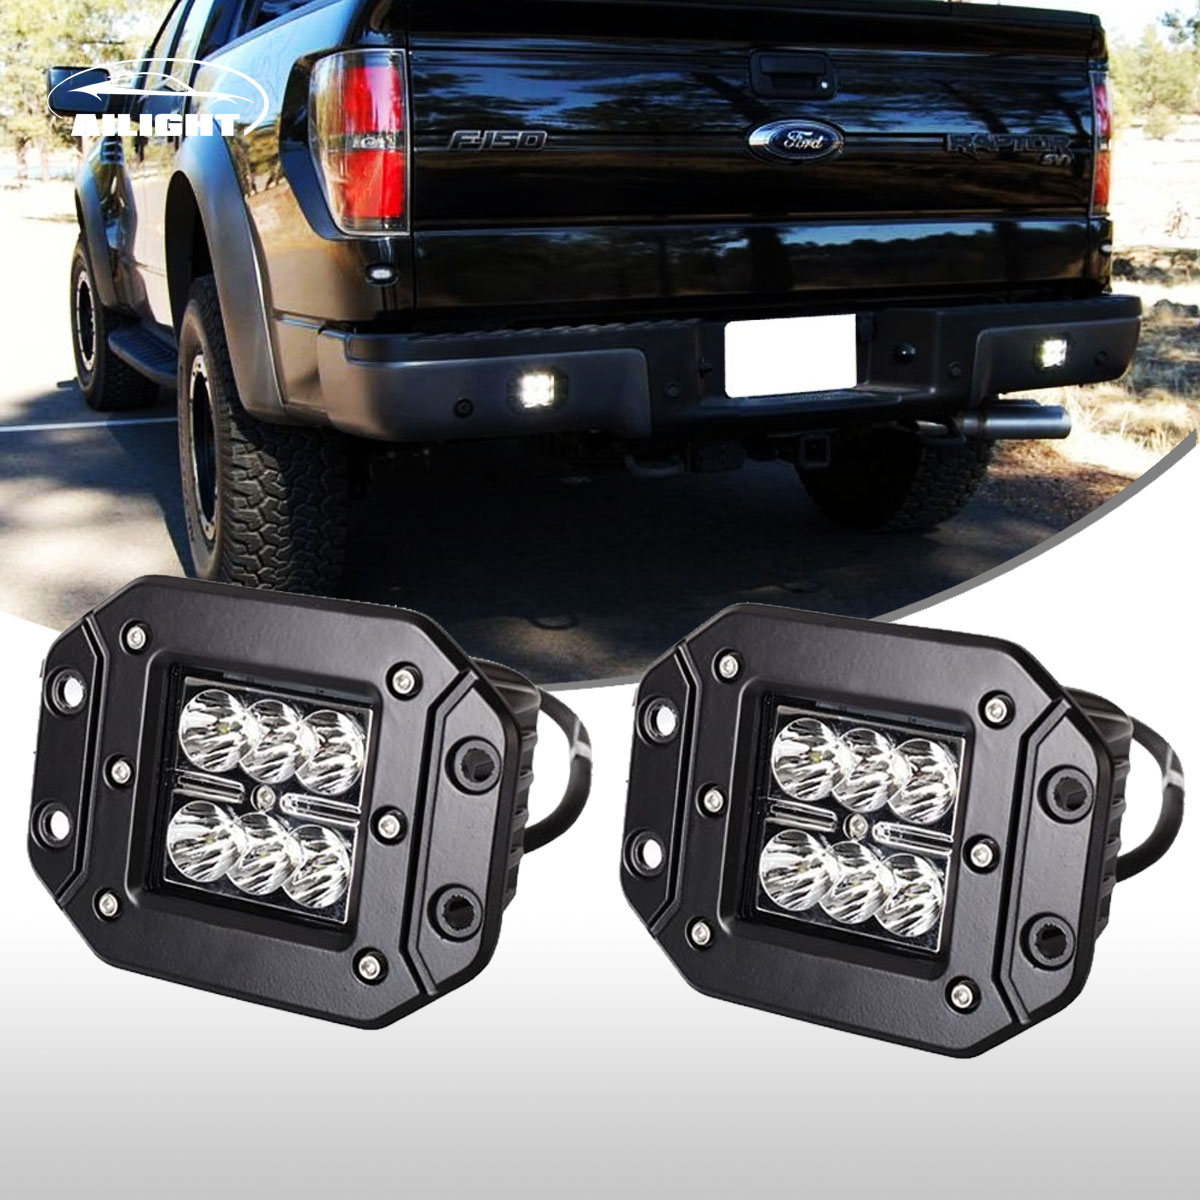 Details About 2x 4 Flush Mount Projector Led Lights Fit Ford Toyota Gmc Truck Off Road Atv